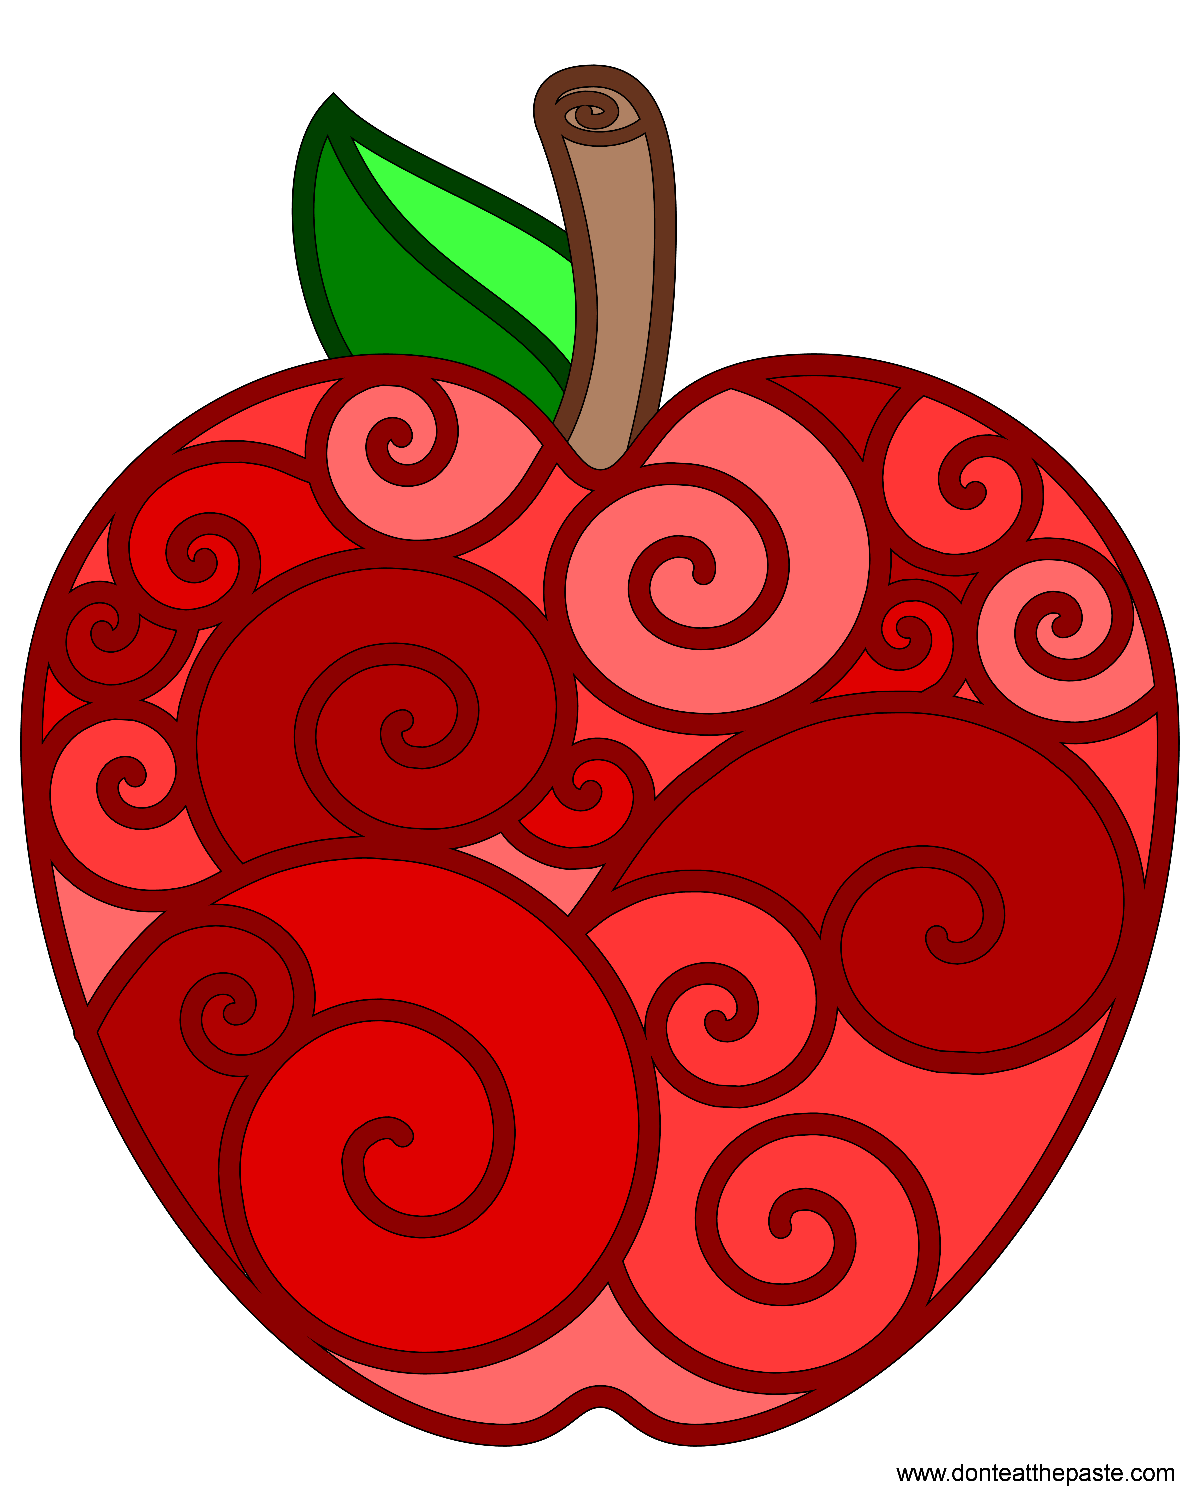 Don't Eat the Paste: Apple Coloring Page